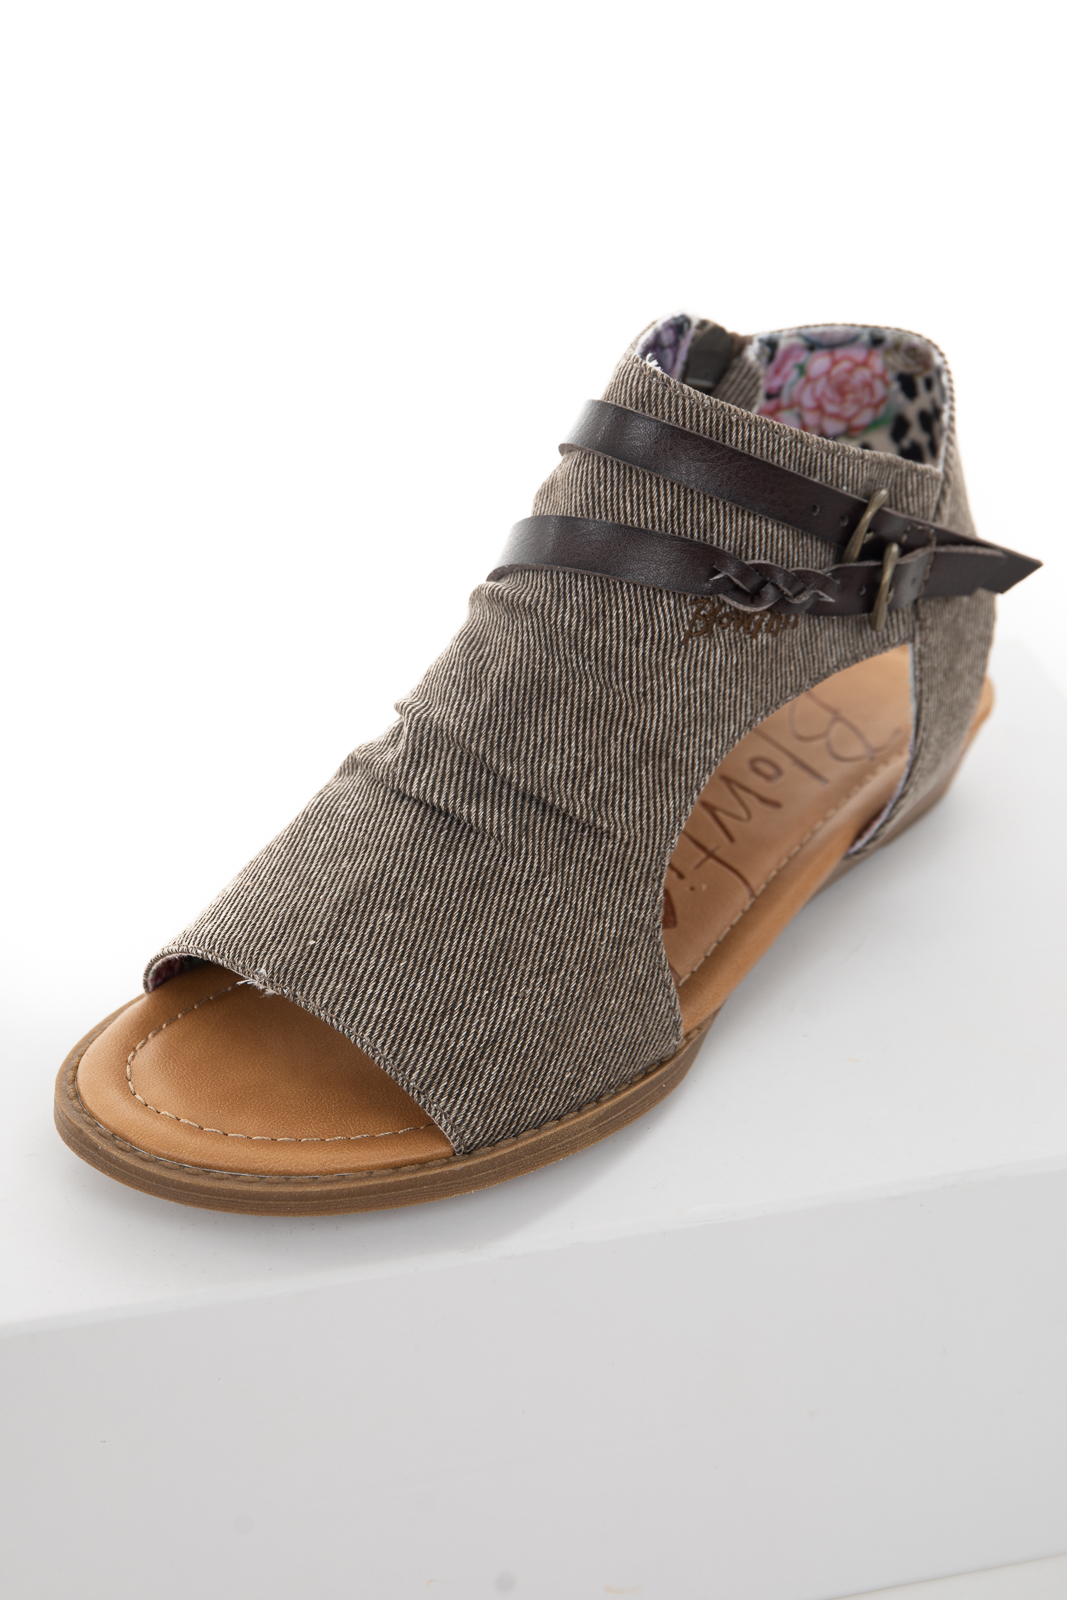 Ash Grey Fabric Top Open Toe Sandals with Buckle Details